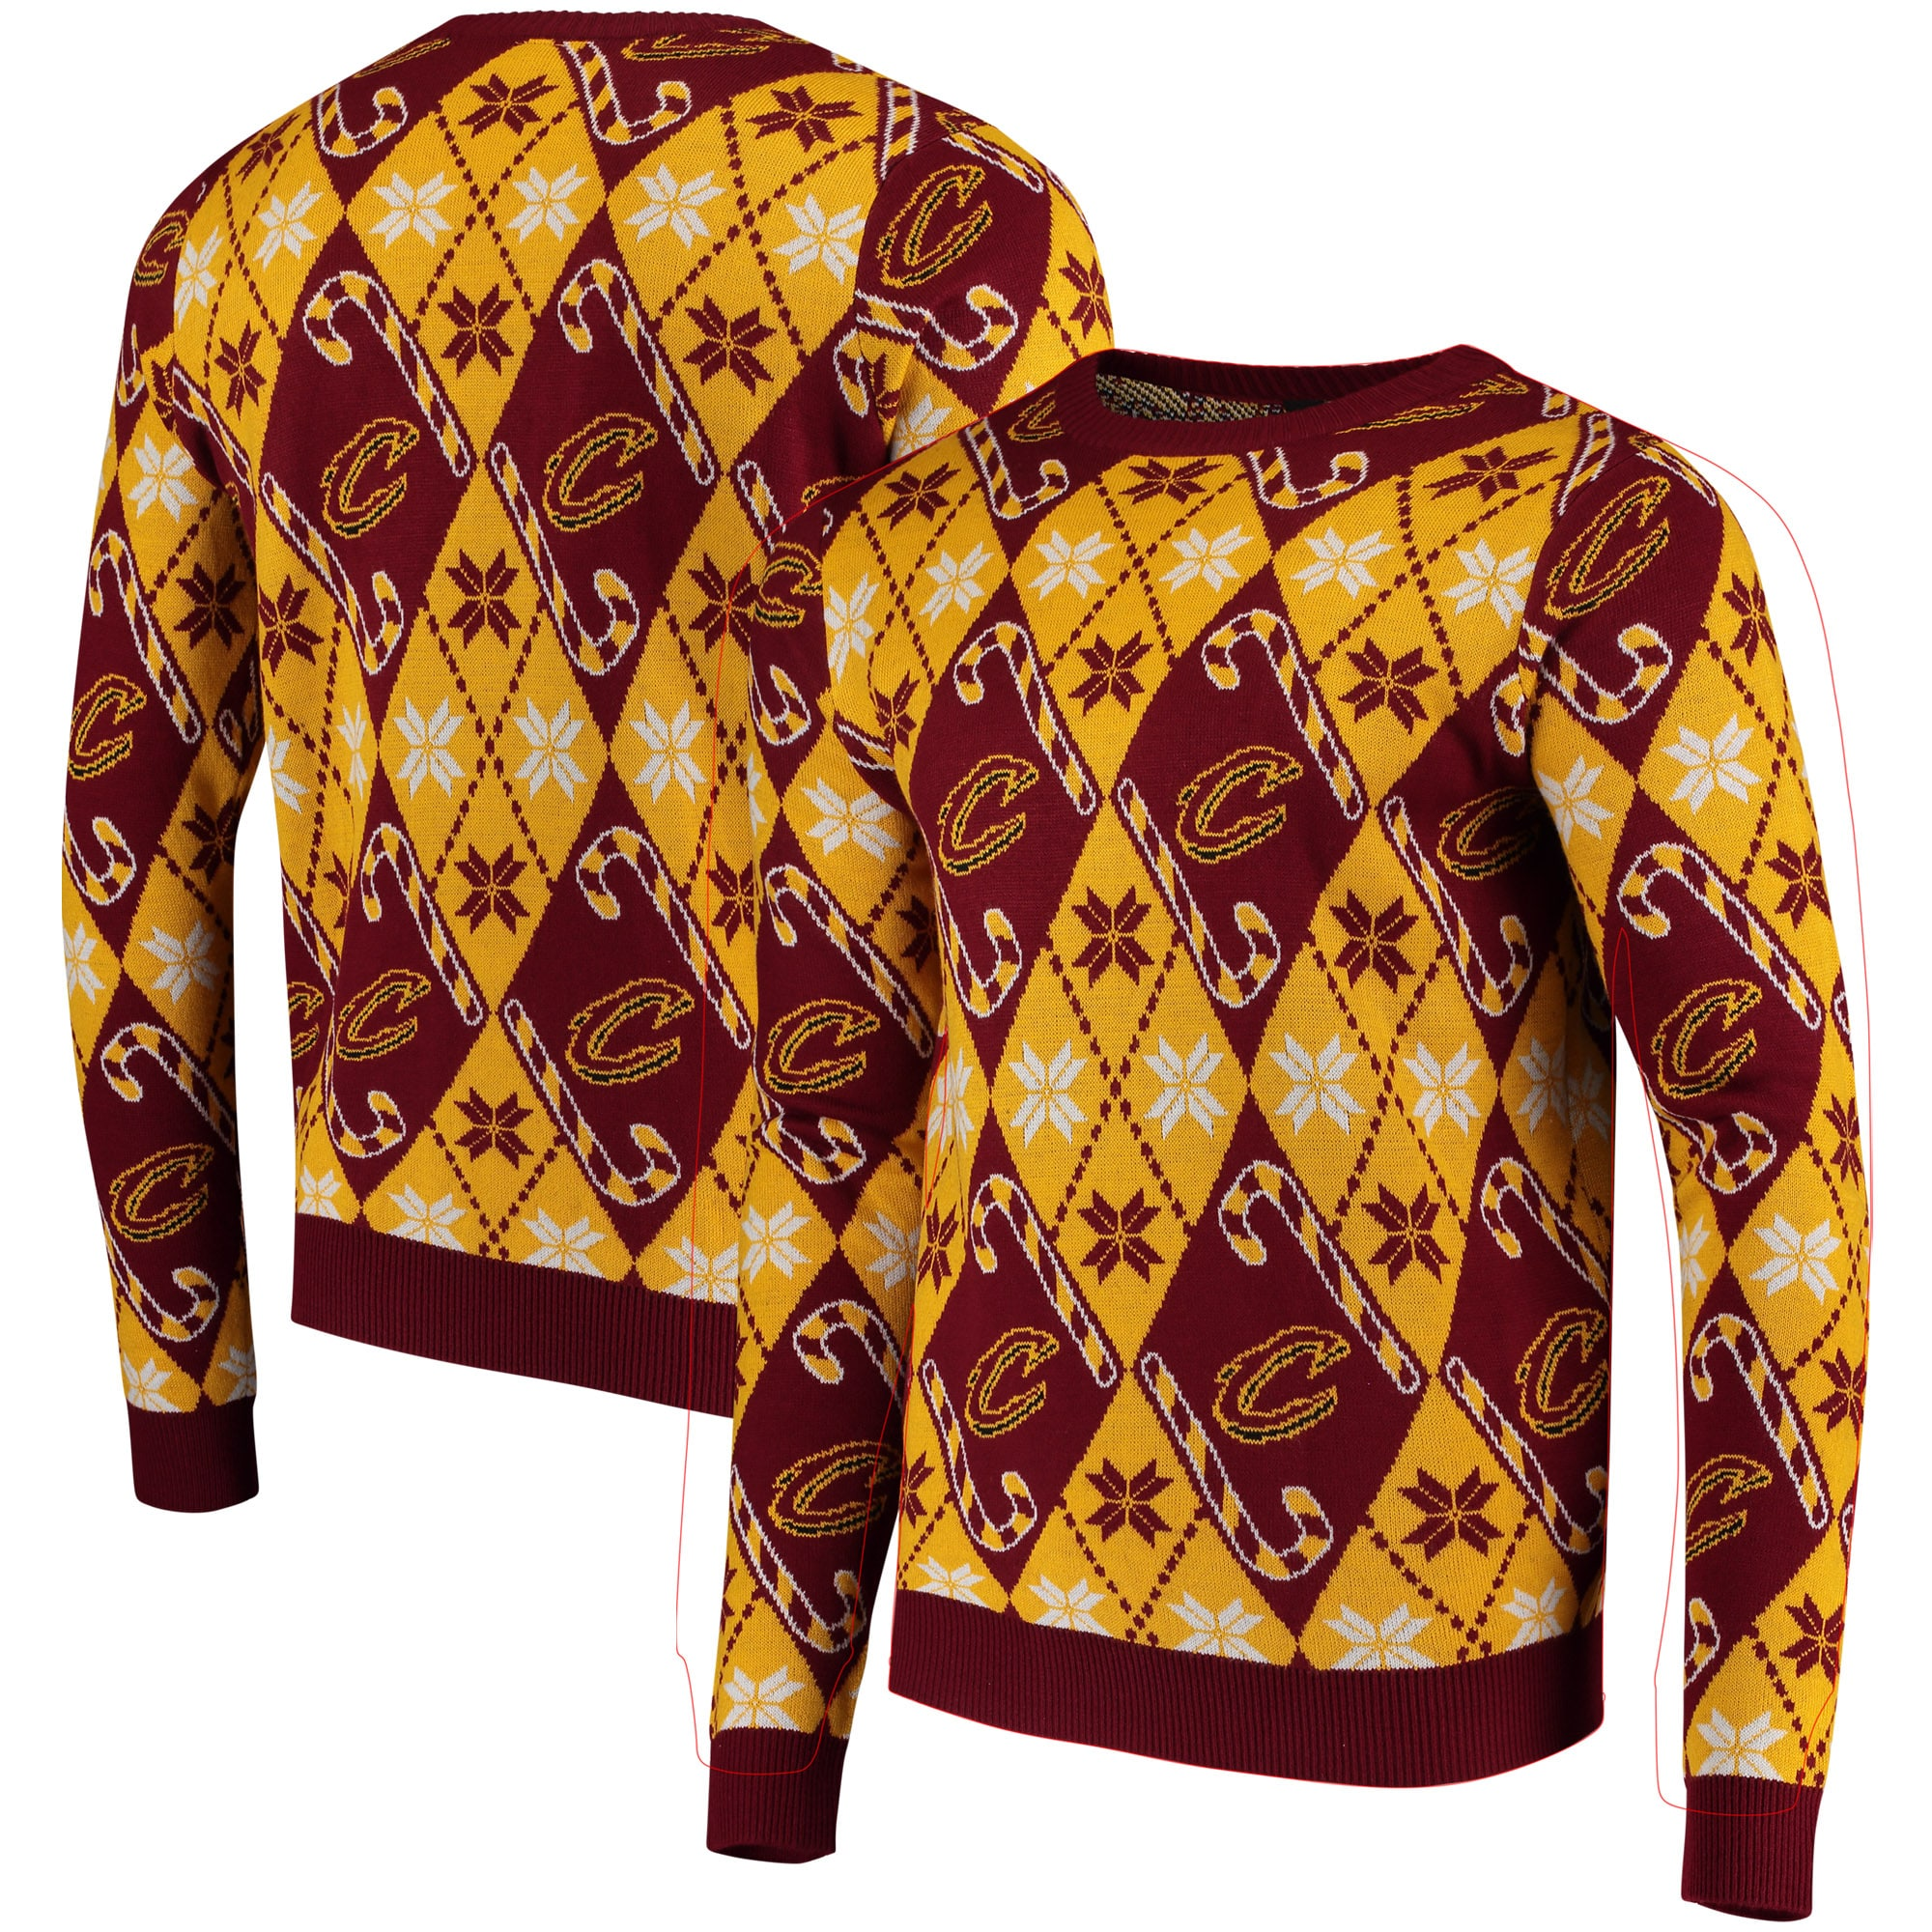 Cleveland Cavaliers Candy Cane Repeat Sweater - Wine